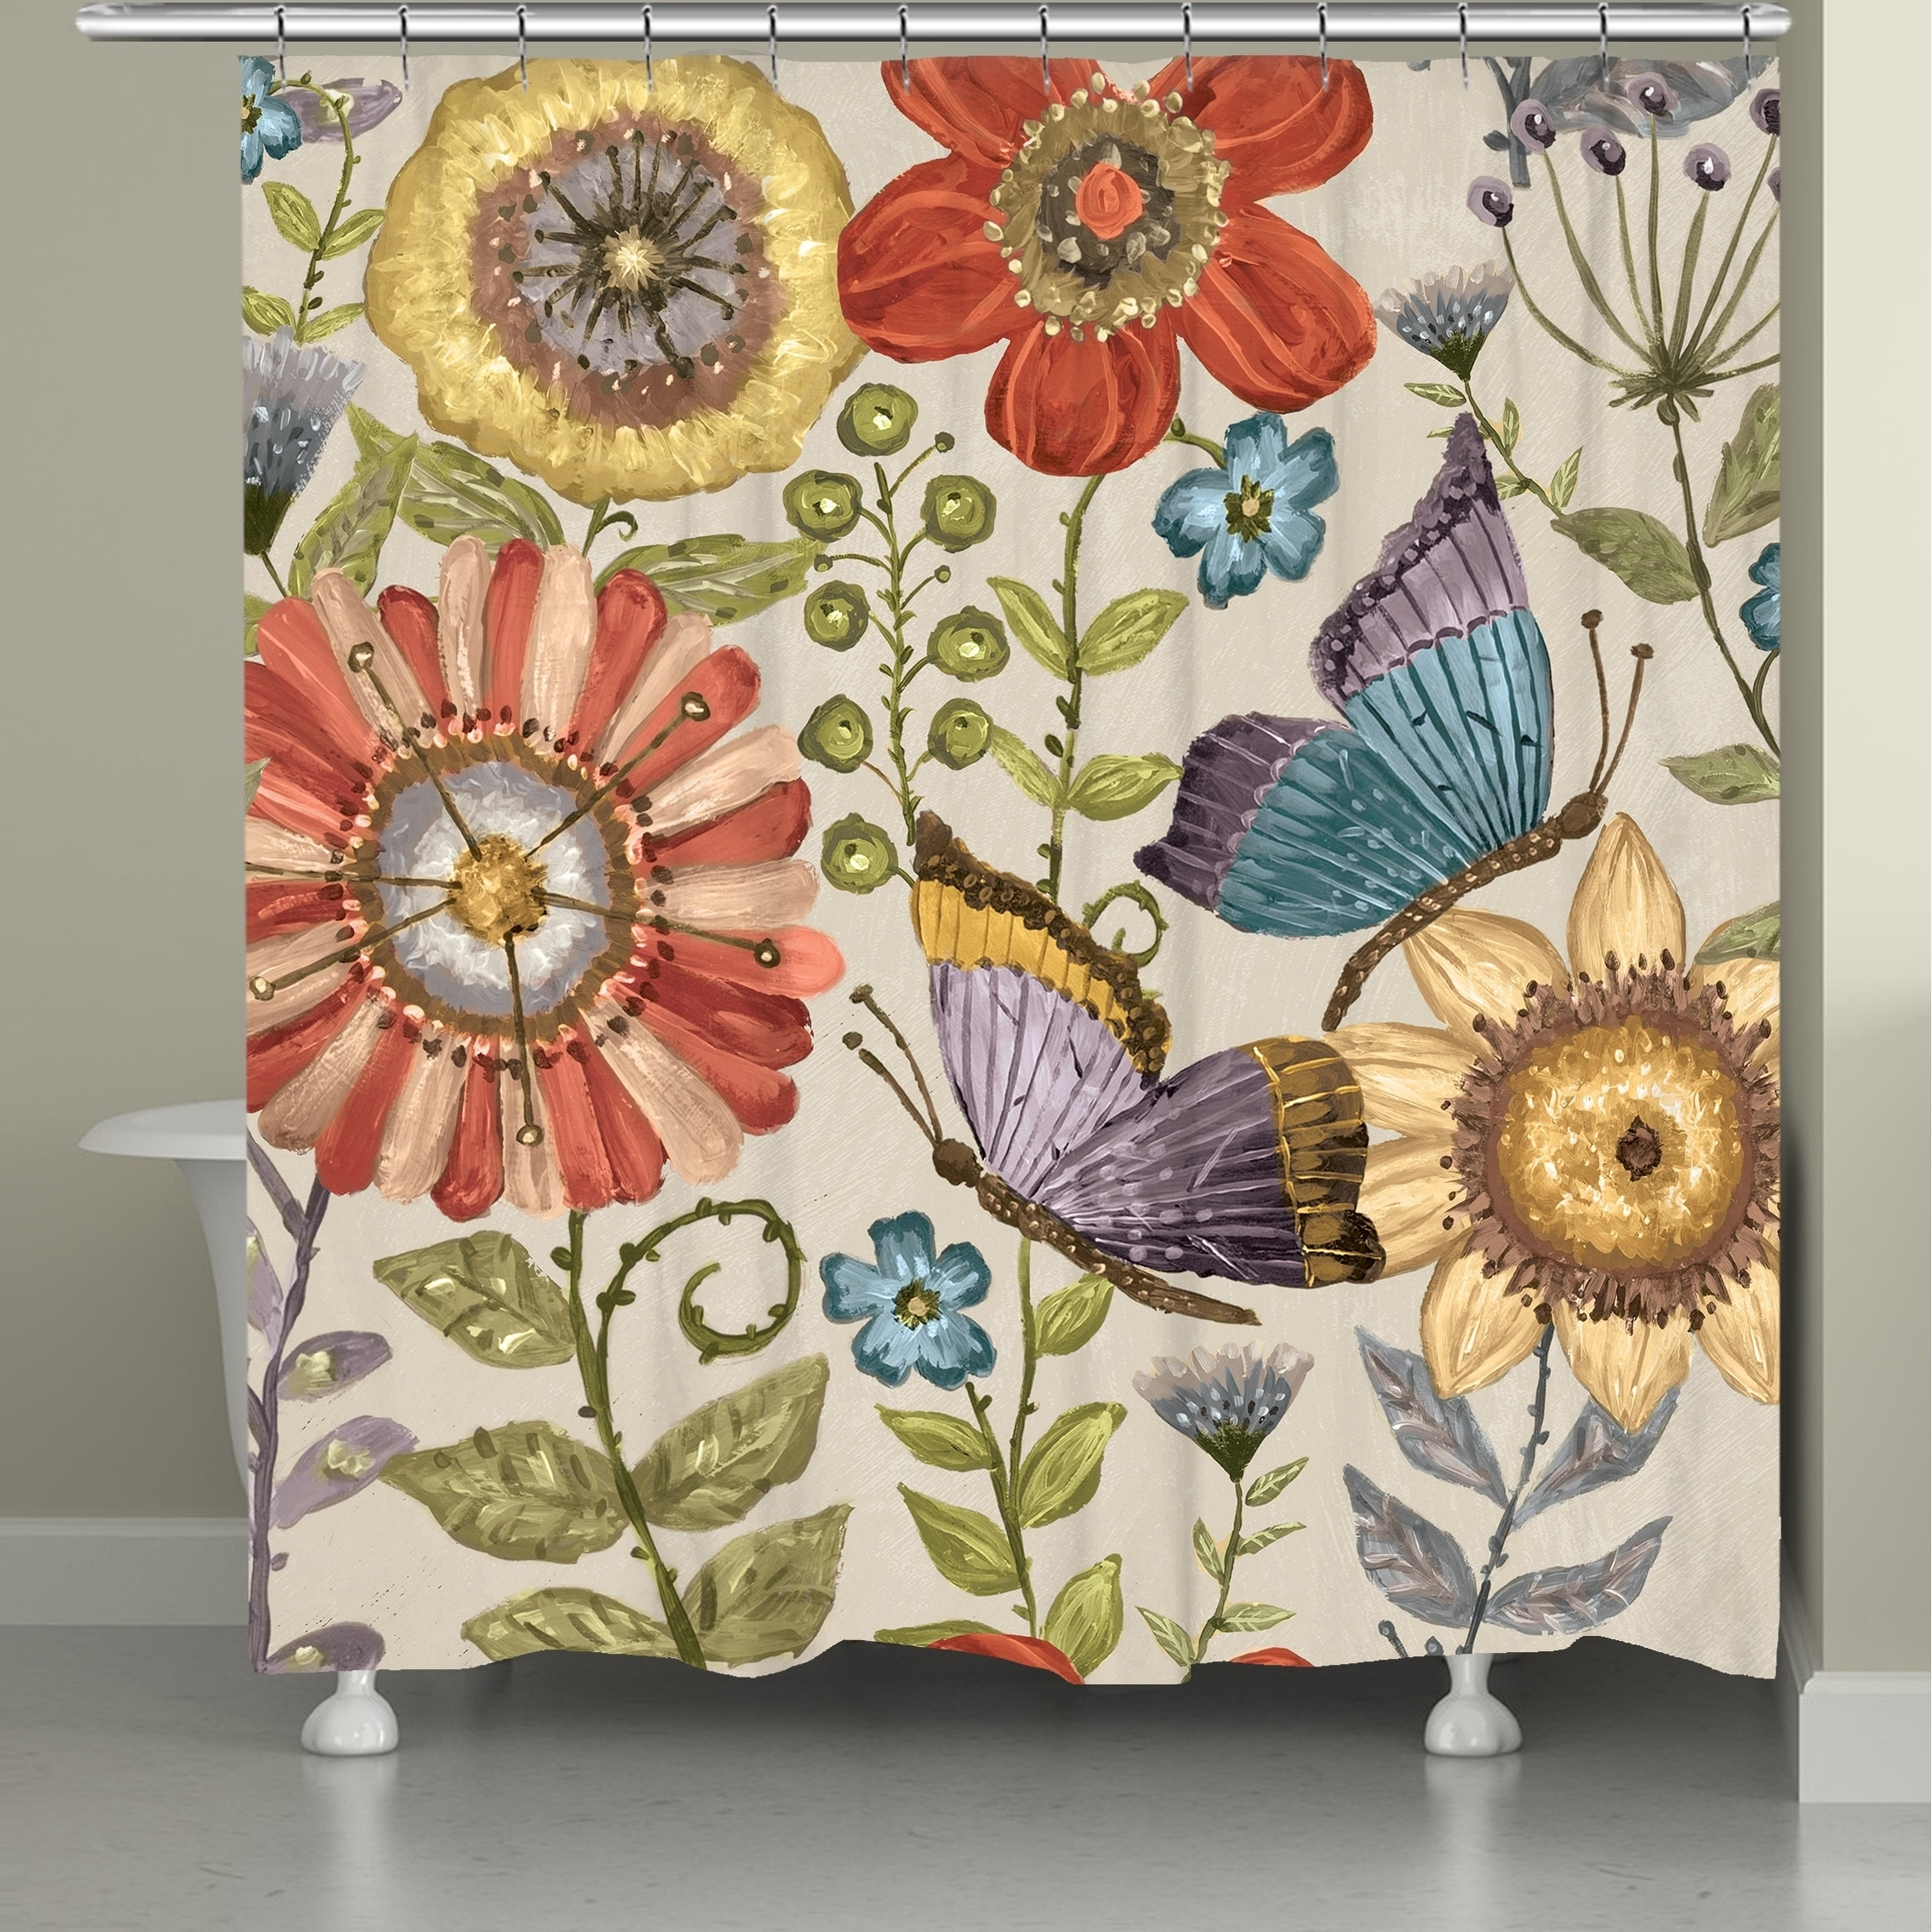 Shop Black Friday Deals On Boho Butterfly Shower Curtain Overstock 29044121